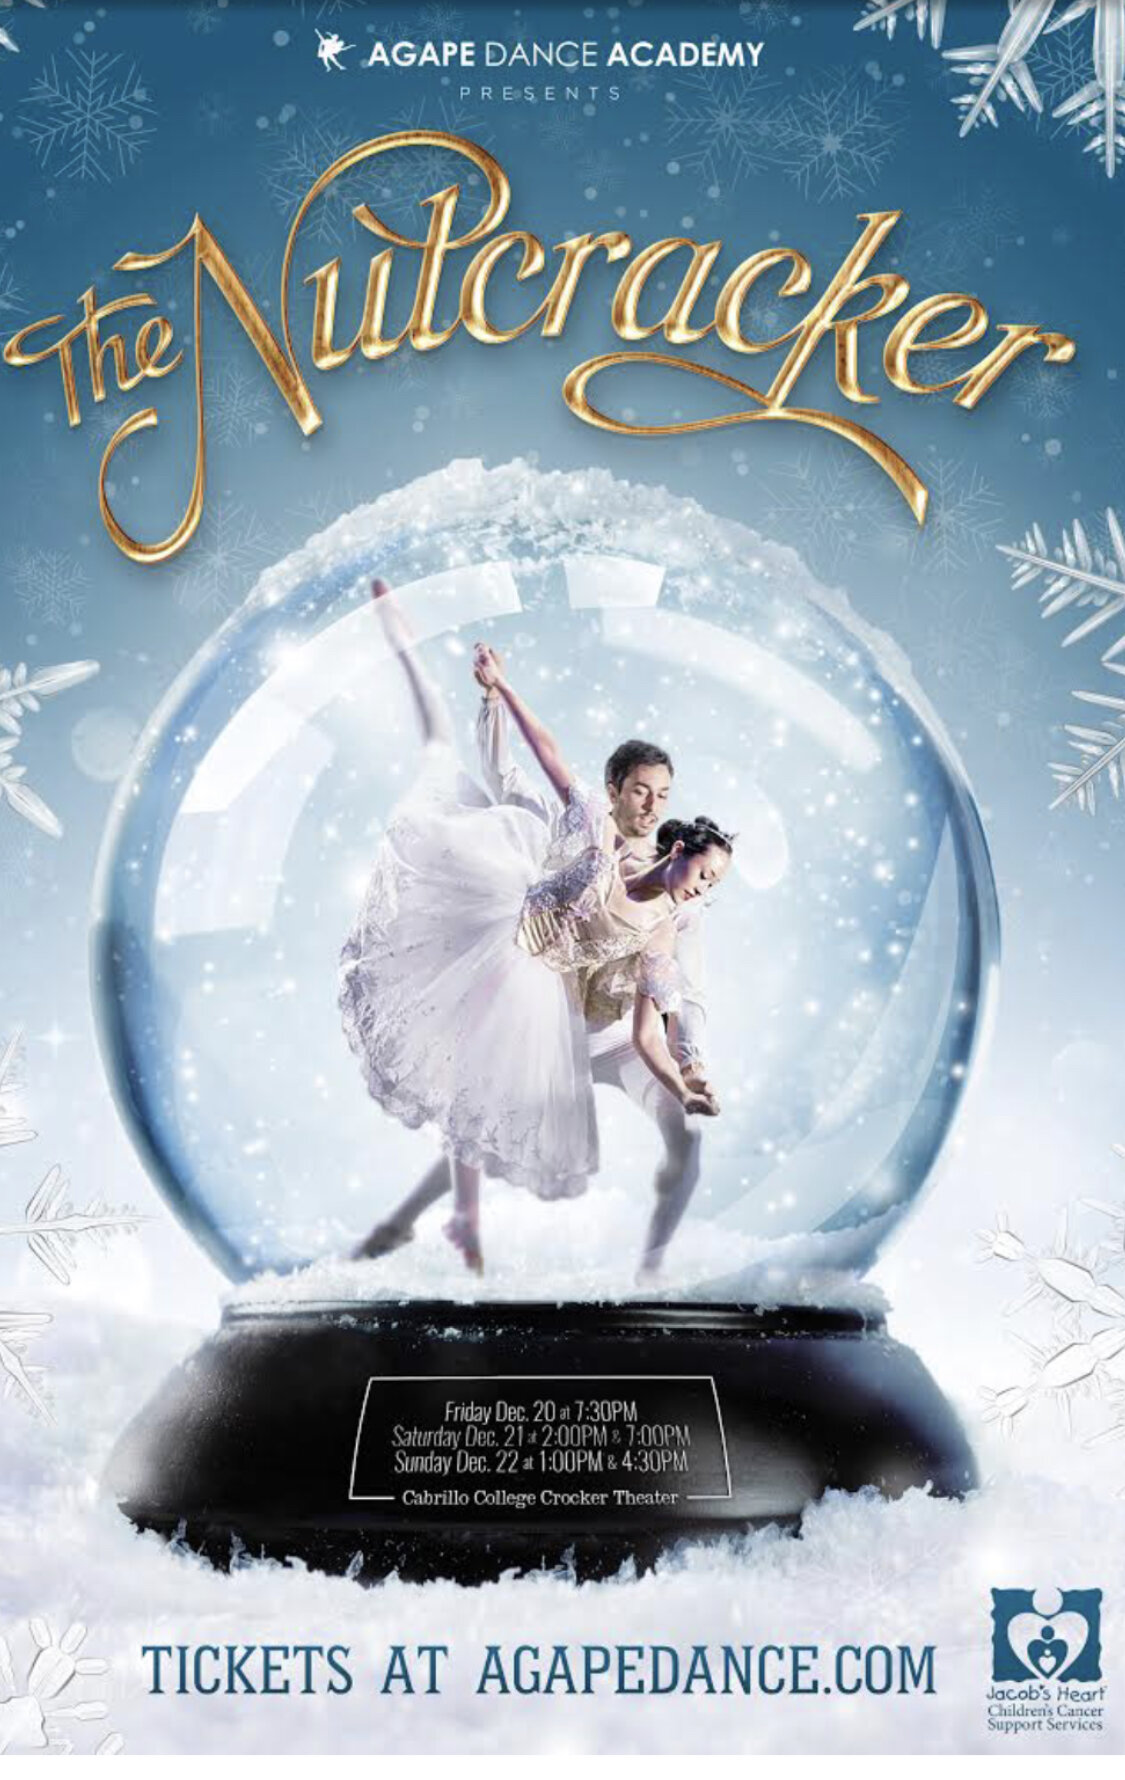 Santa Cruz Nutcracker 2019